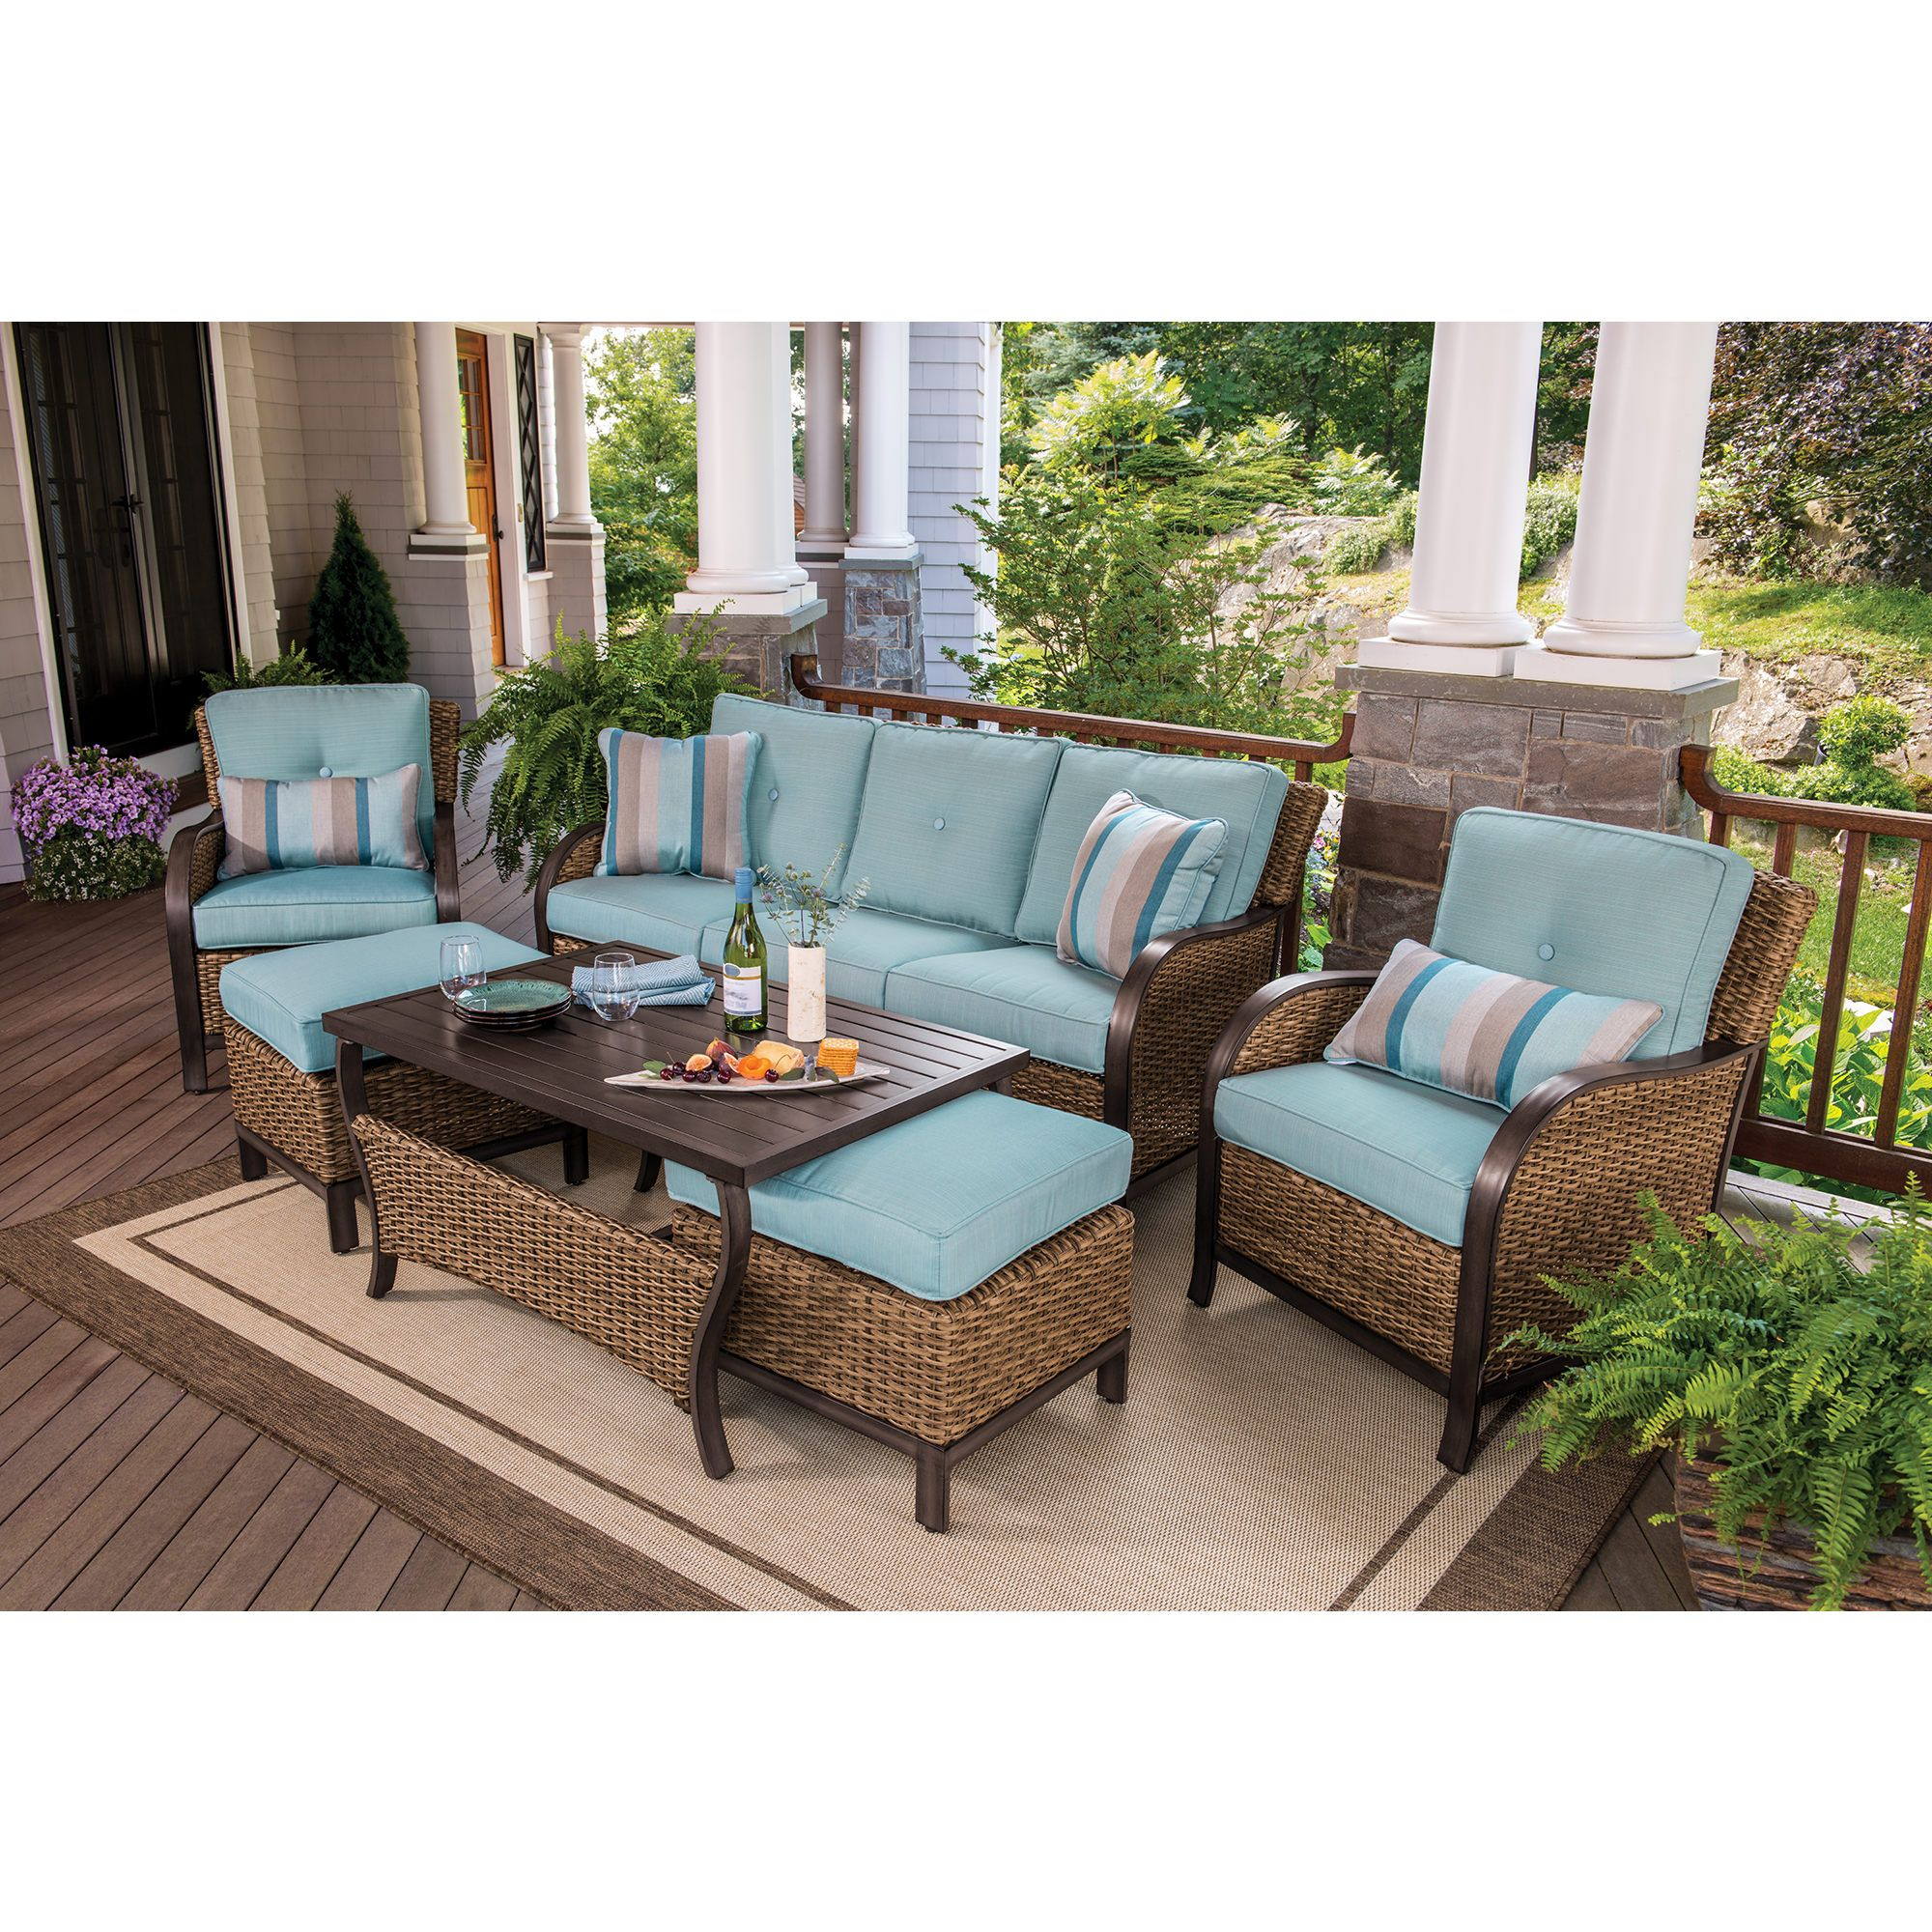 Berkley jensen nantucket 6 piece wicker patio set bjs for Patio furniture sets